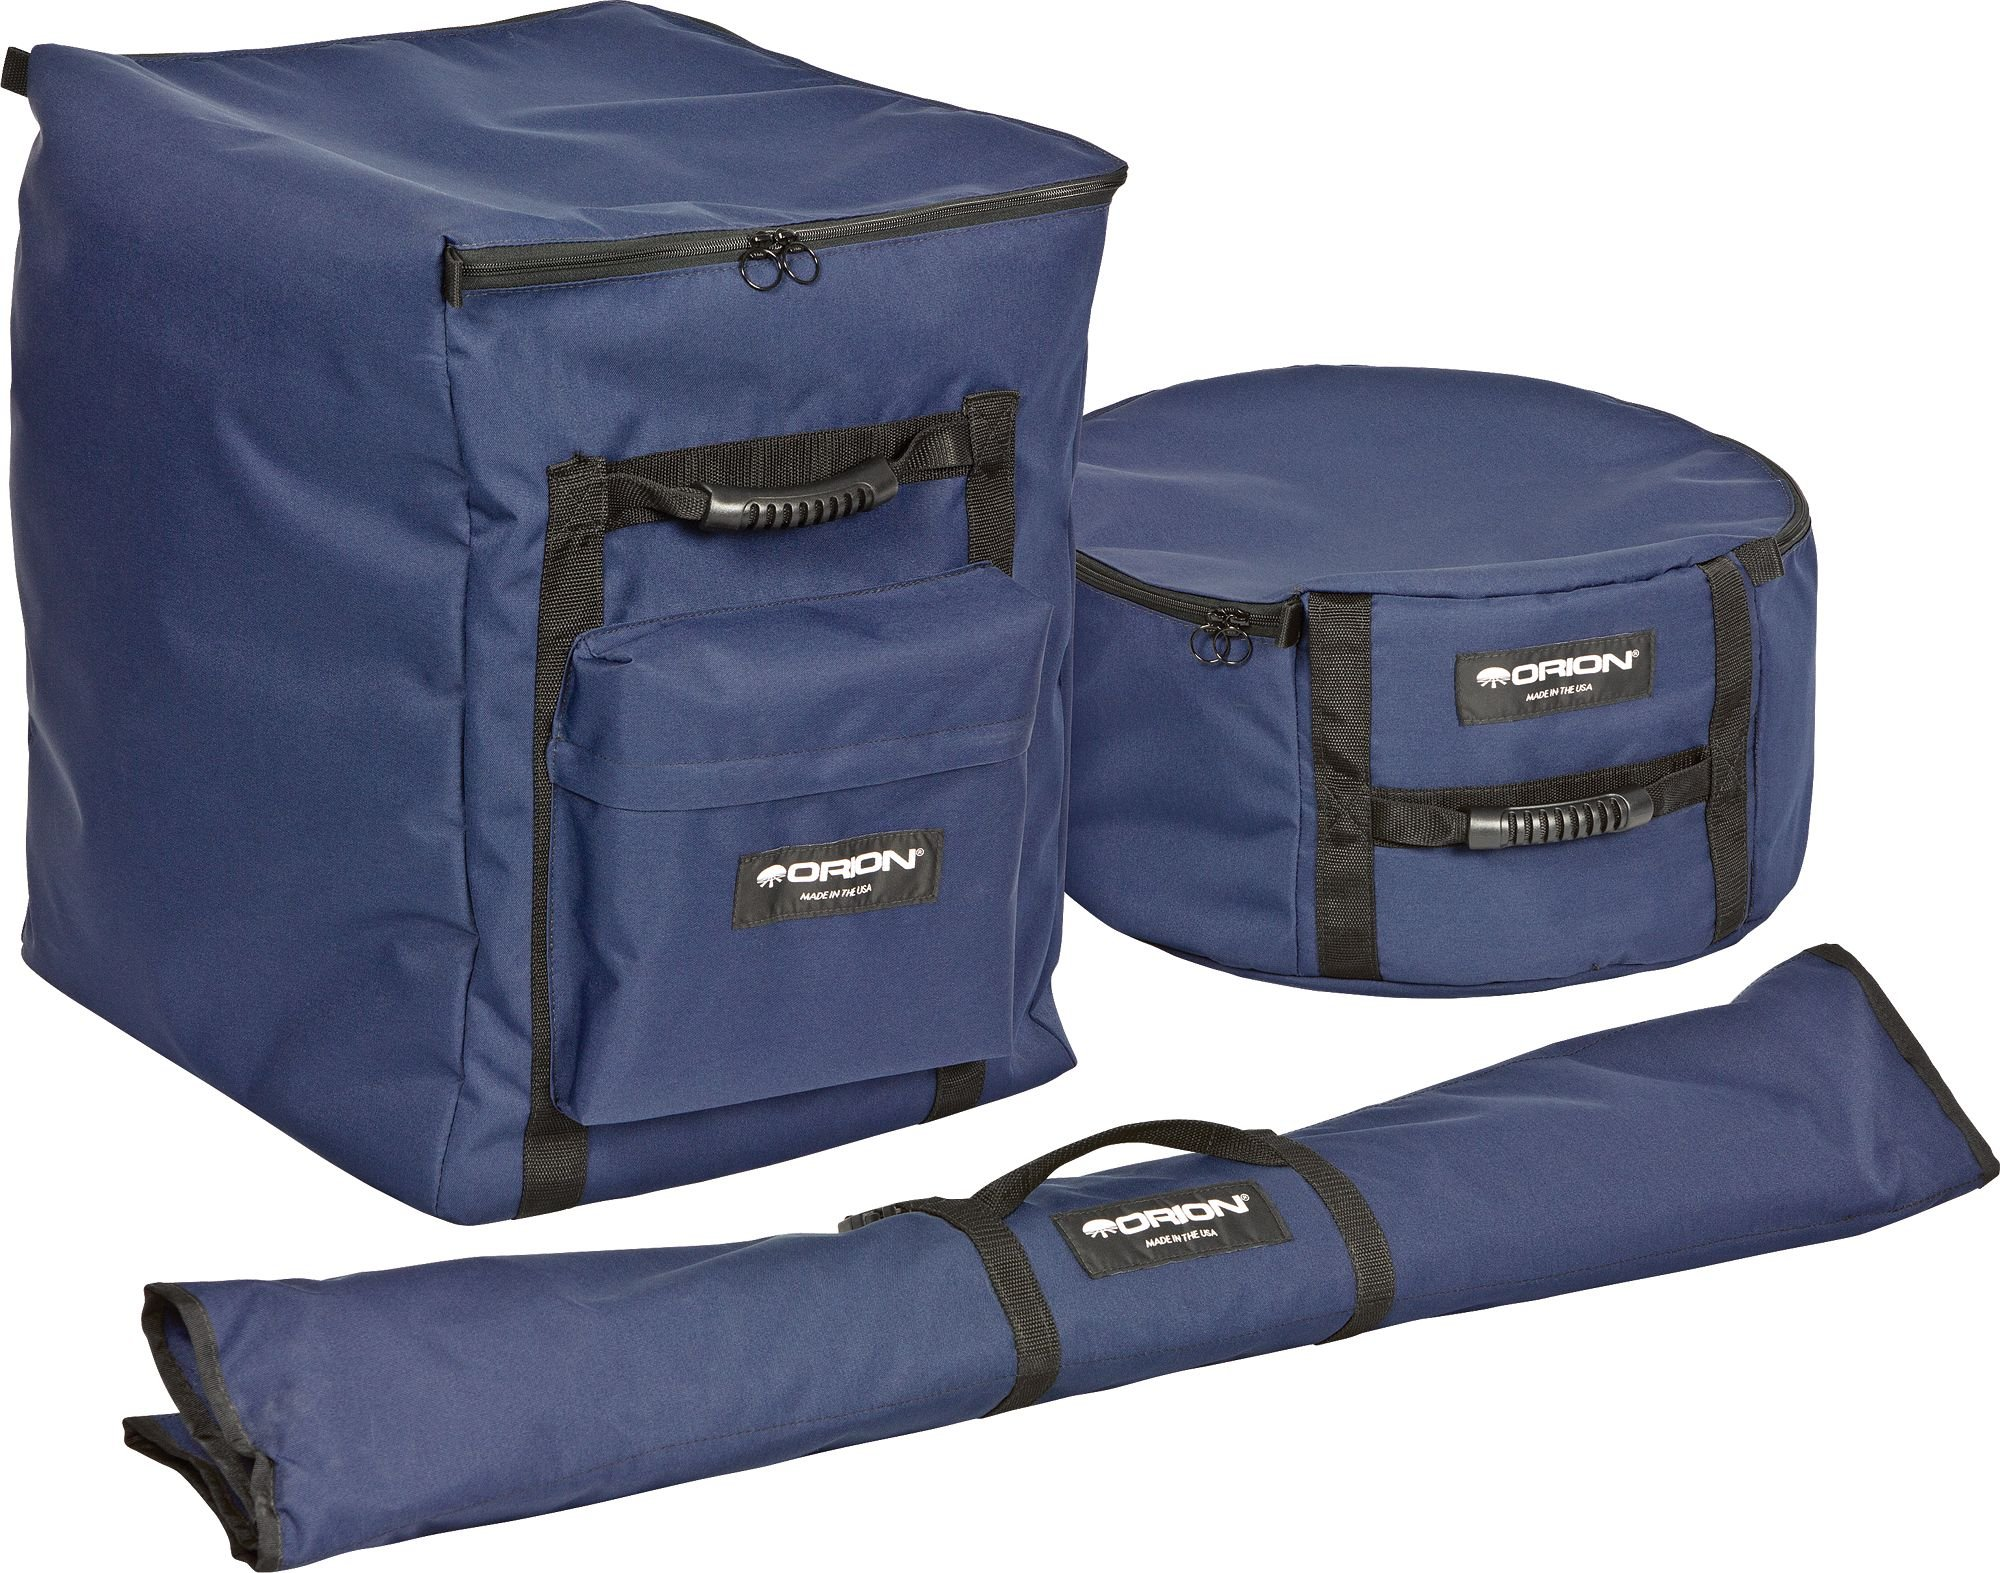 Orion 15102 Set of SkyQuest XX16g Padded Telescope Cases by Orion